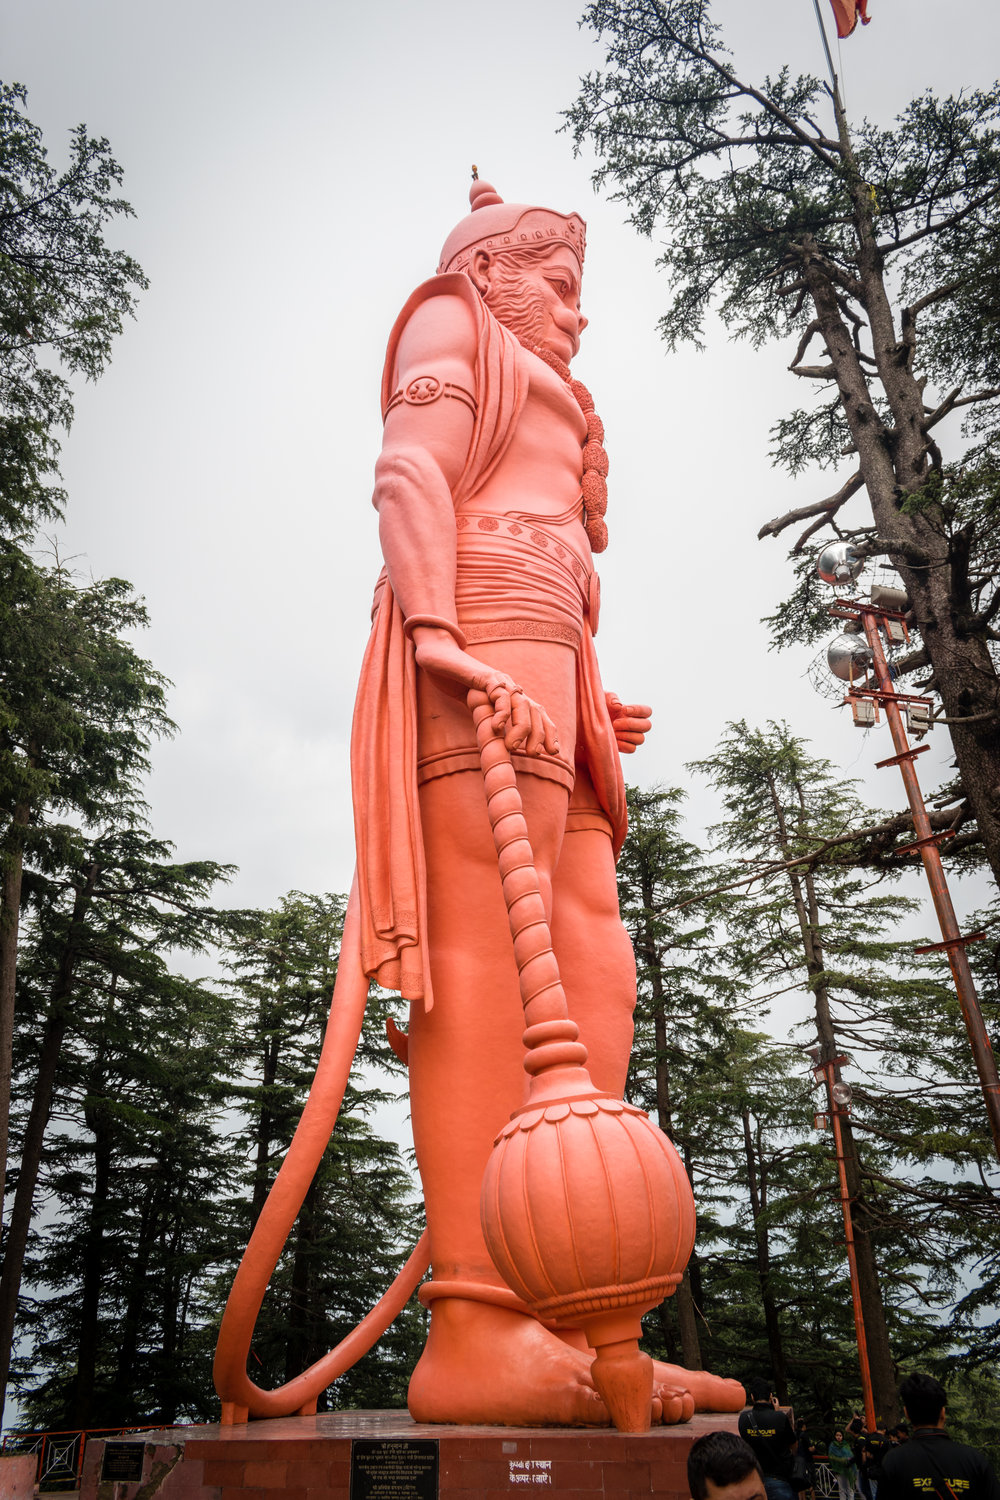 The Monkey Statue in Shimla, India